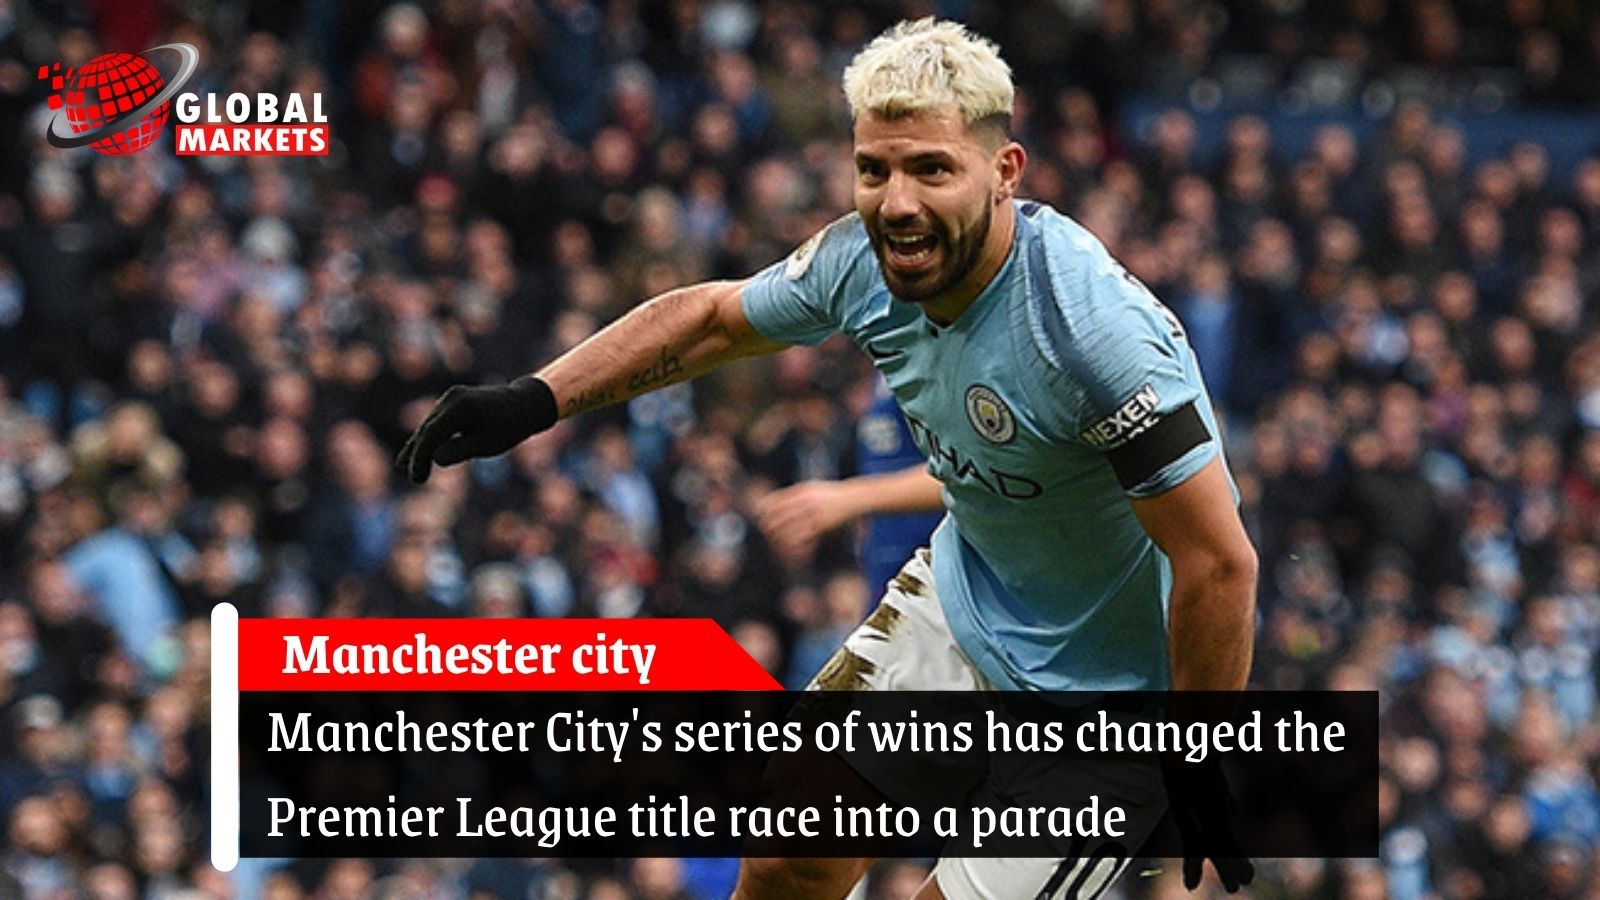 Manchester City's series of wins has changed Premier League title race into a parade.